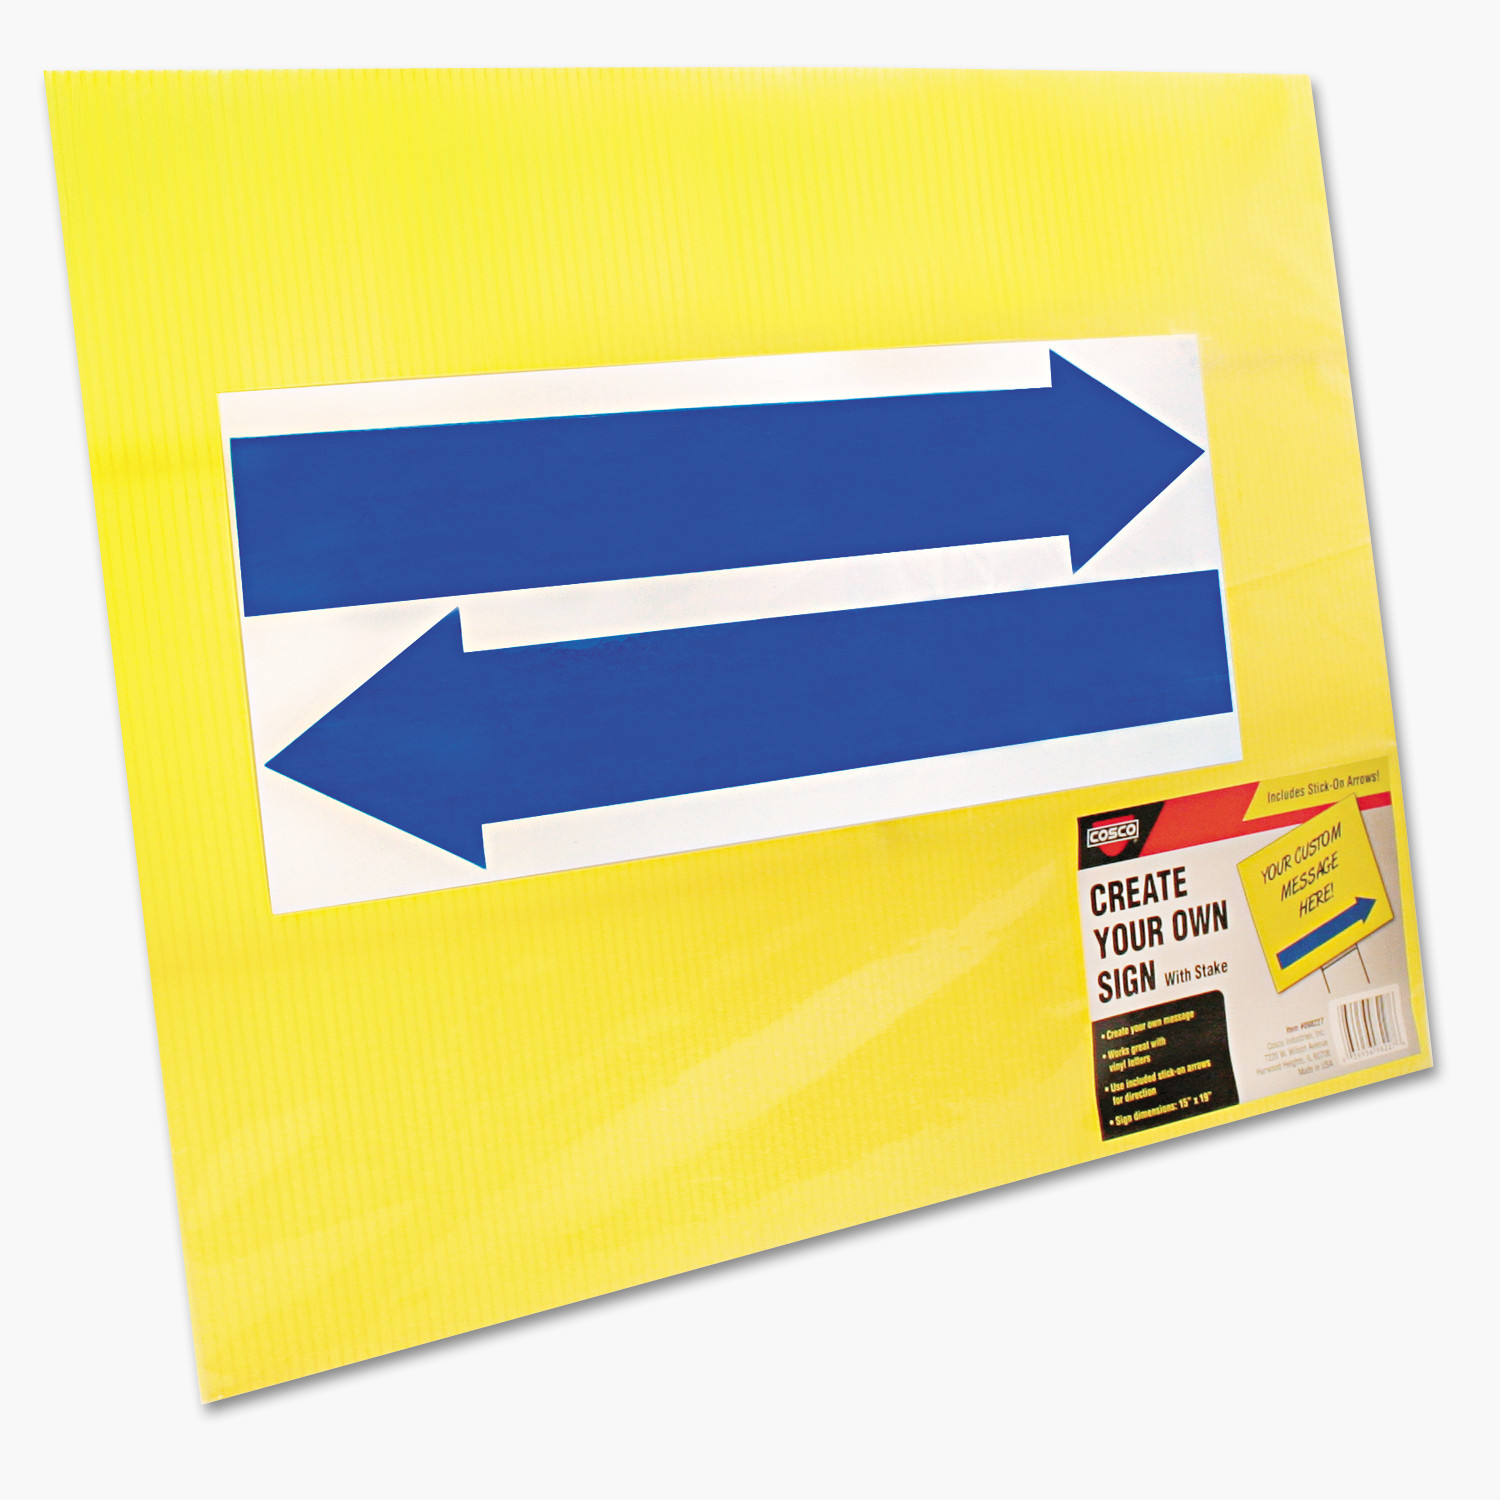 COSCO Stake Sign, Blank, Yellow, Includes Directional Arrows, 15 x 19 -COS098227